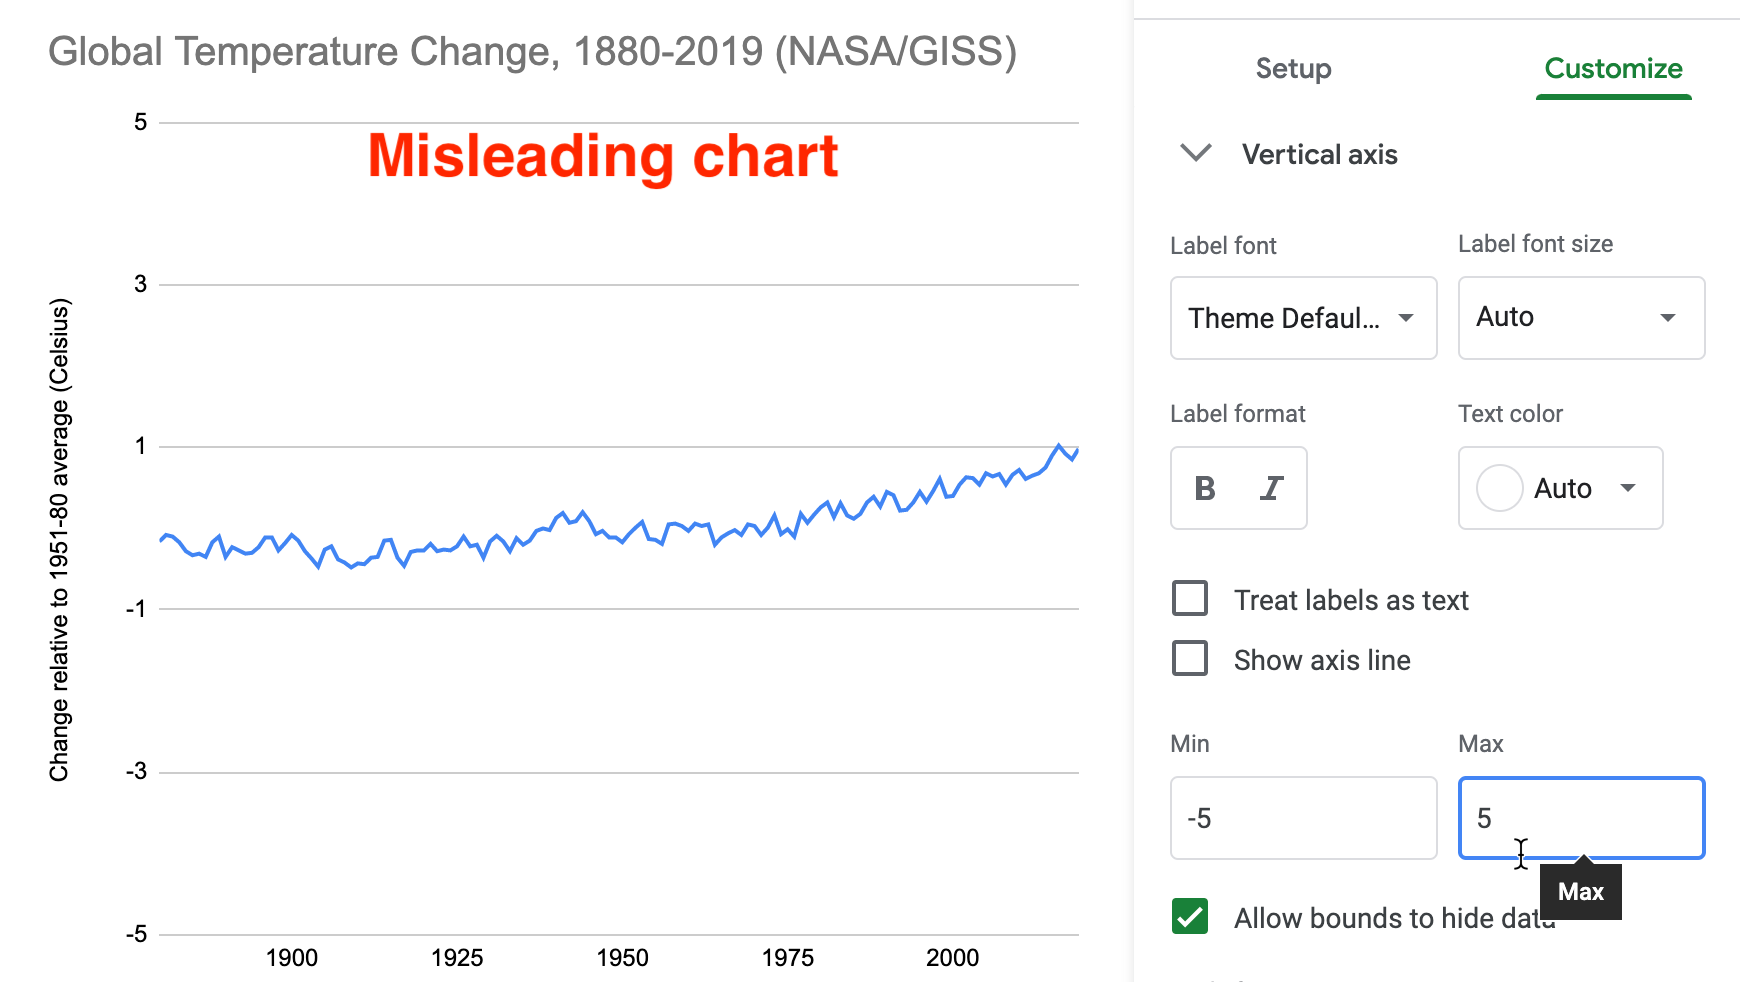 Misleading chart with a lengthened vertical axis.